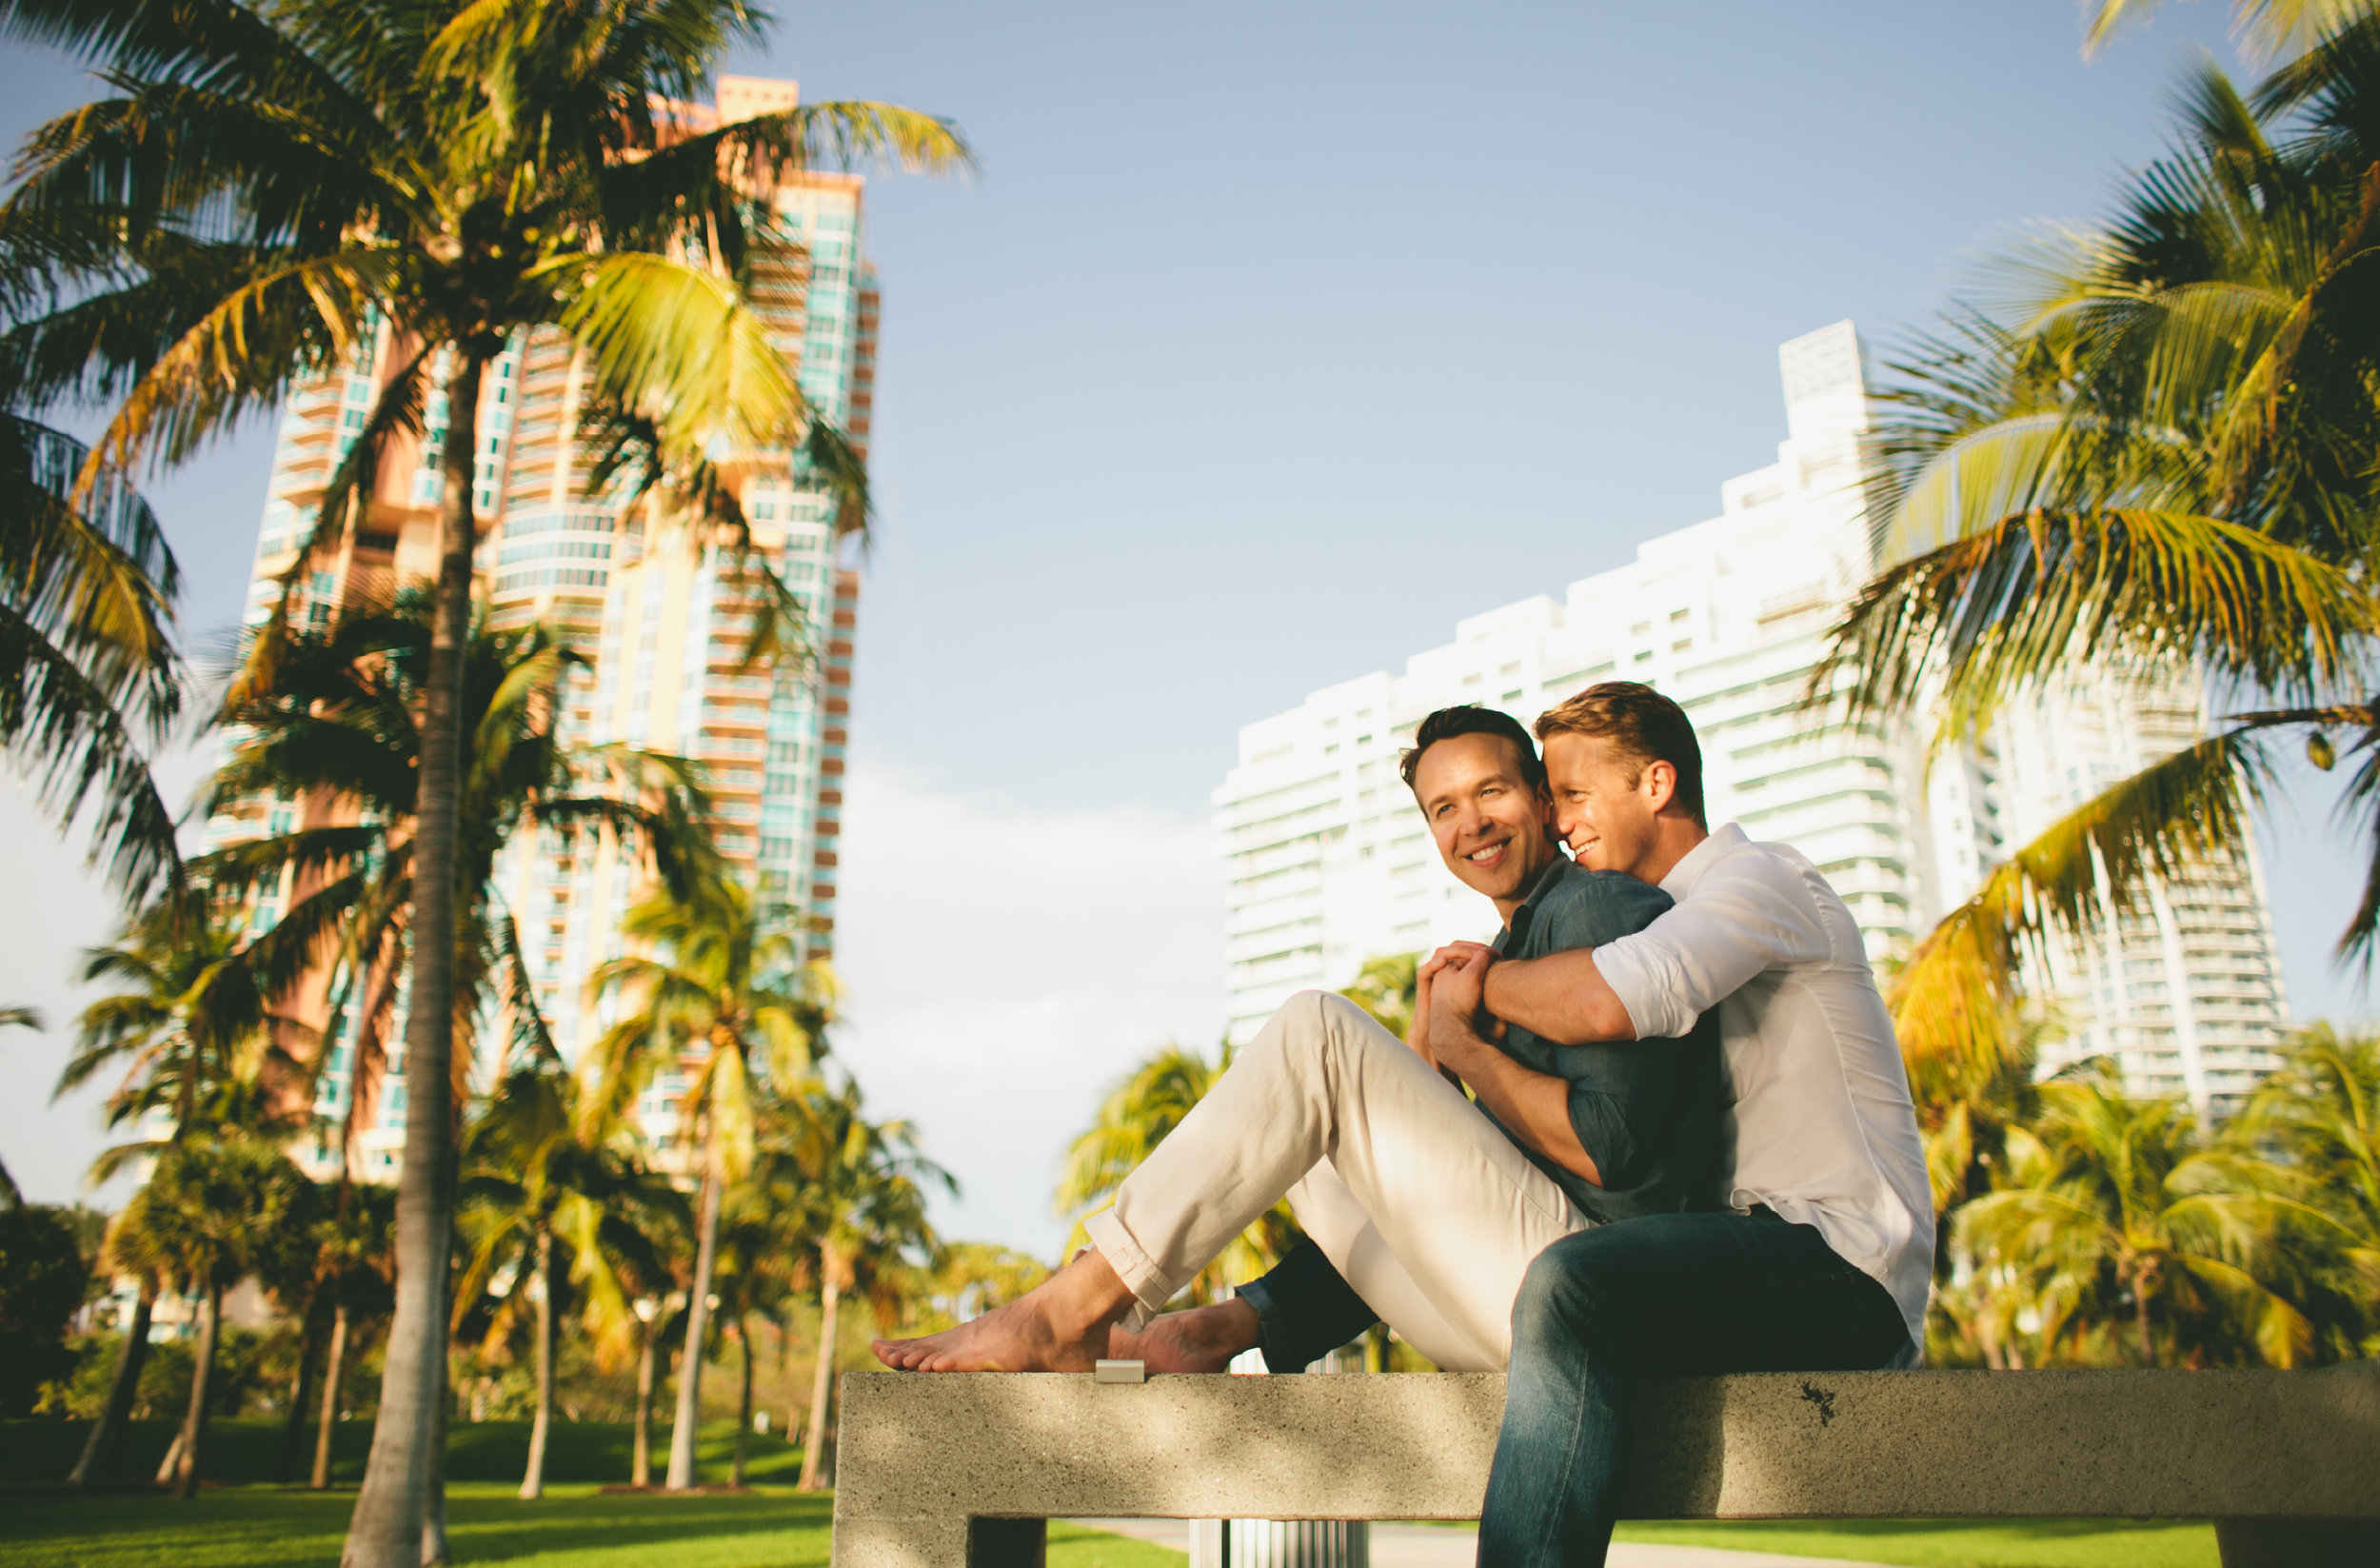 South Beach Miami Engagement photos at South Pointe Park 19.jpg